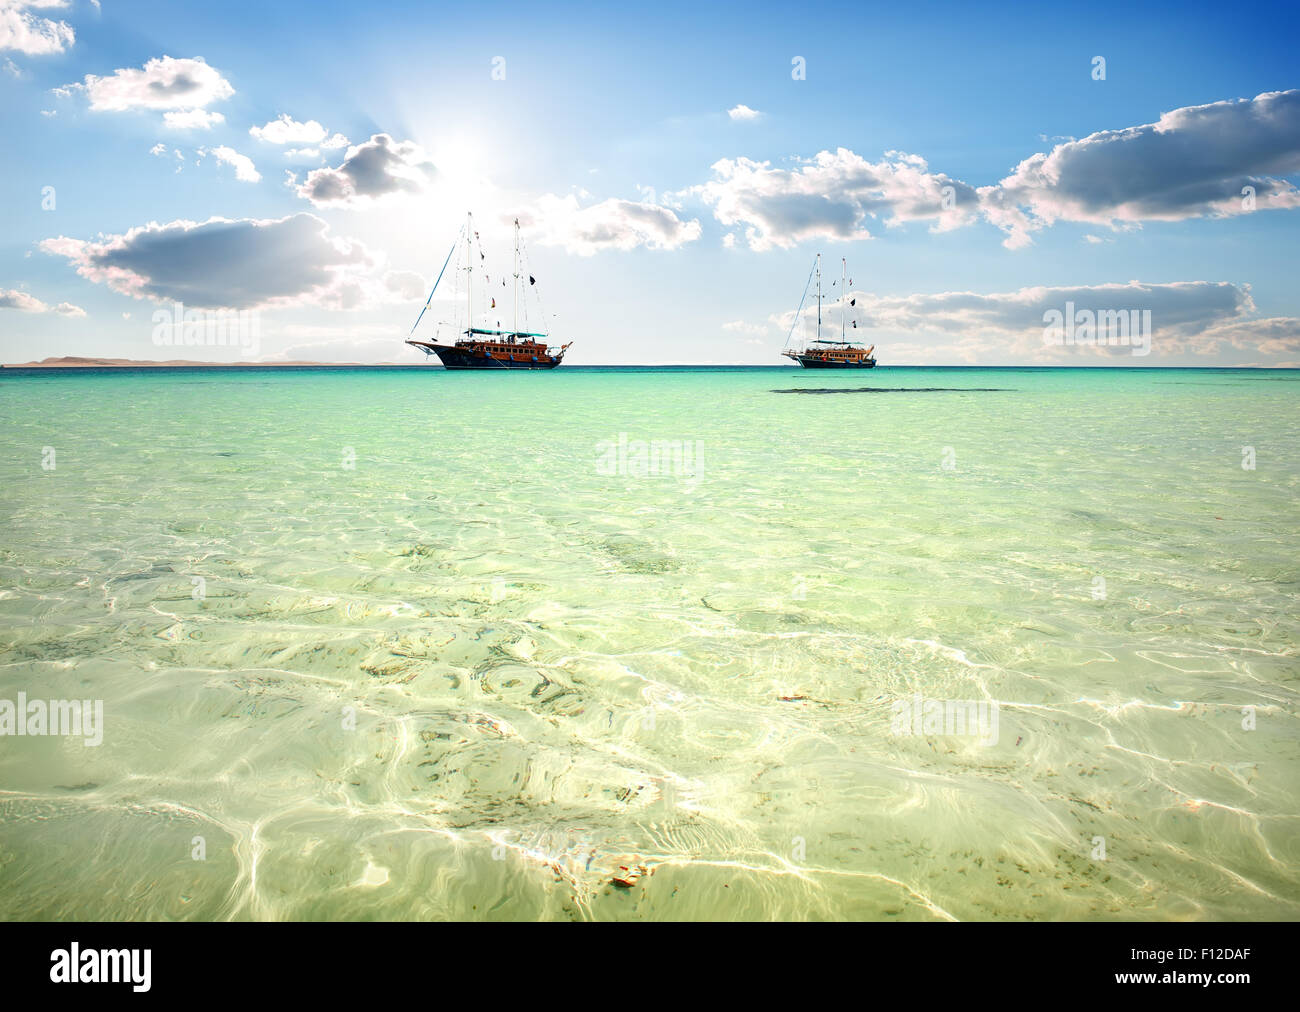 Two sailboats in turquoise sea under sunlight - Stock Image